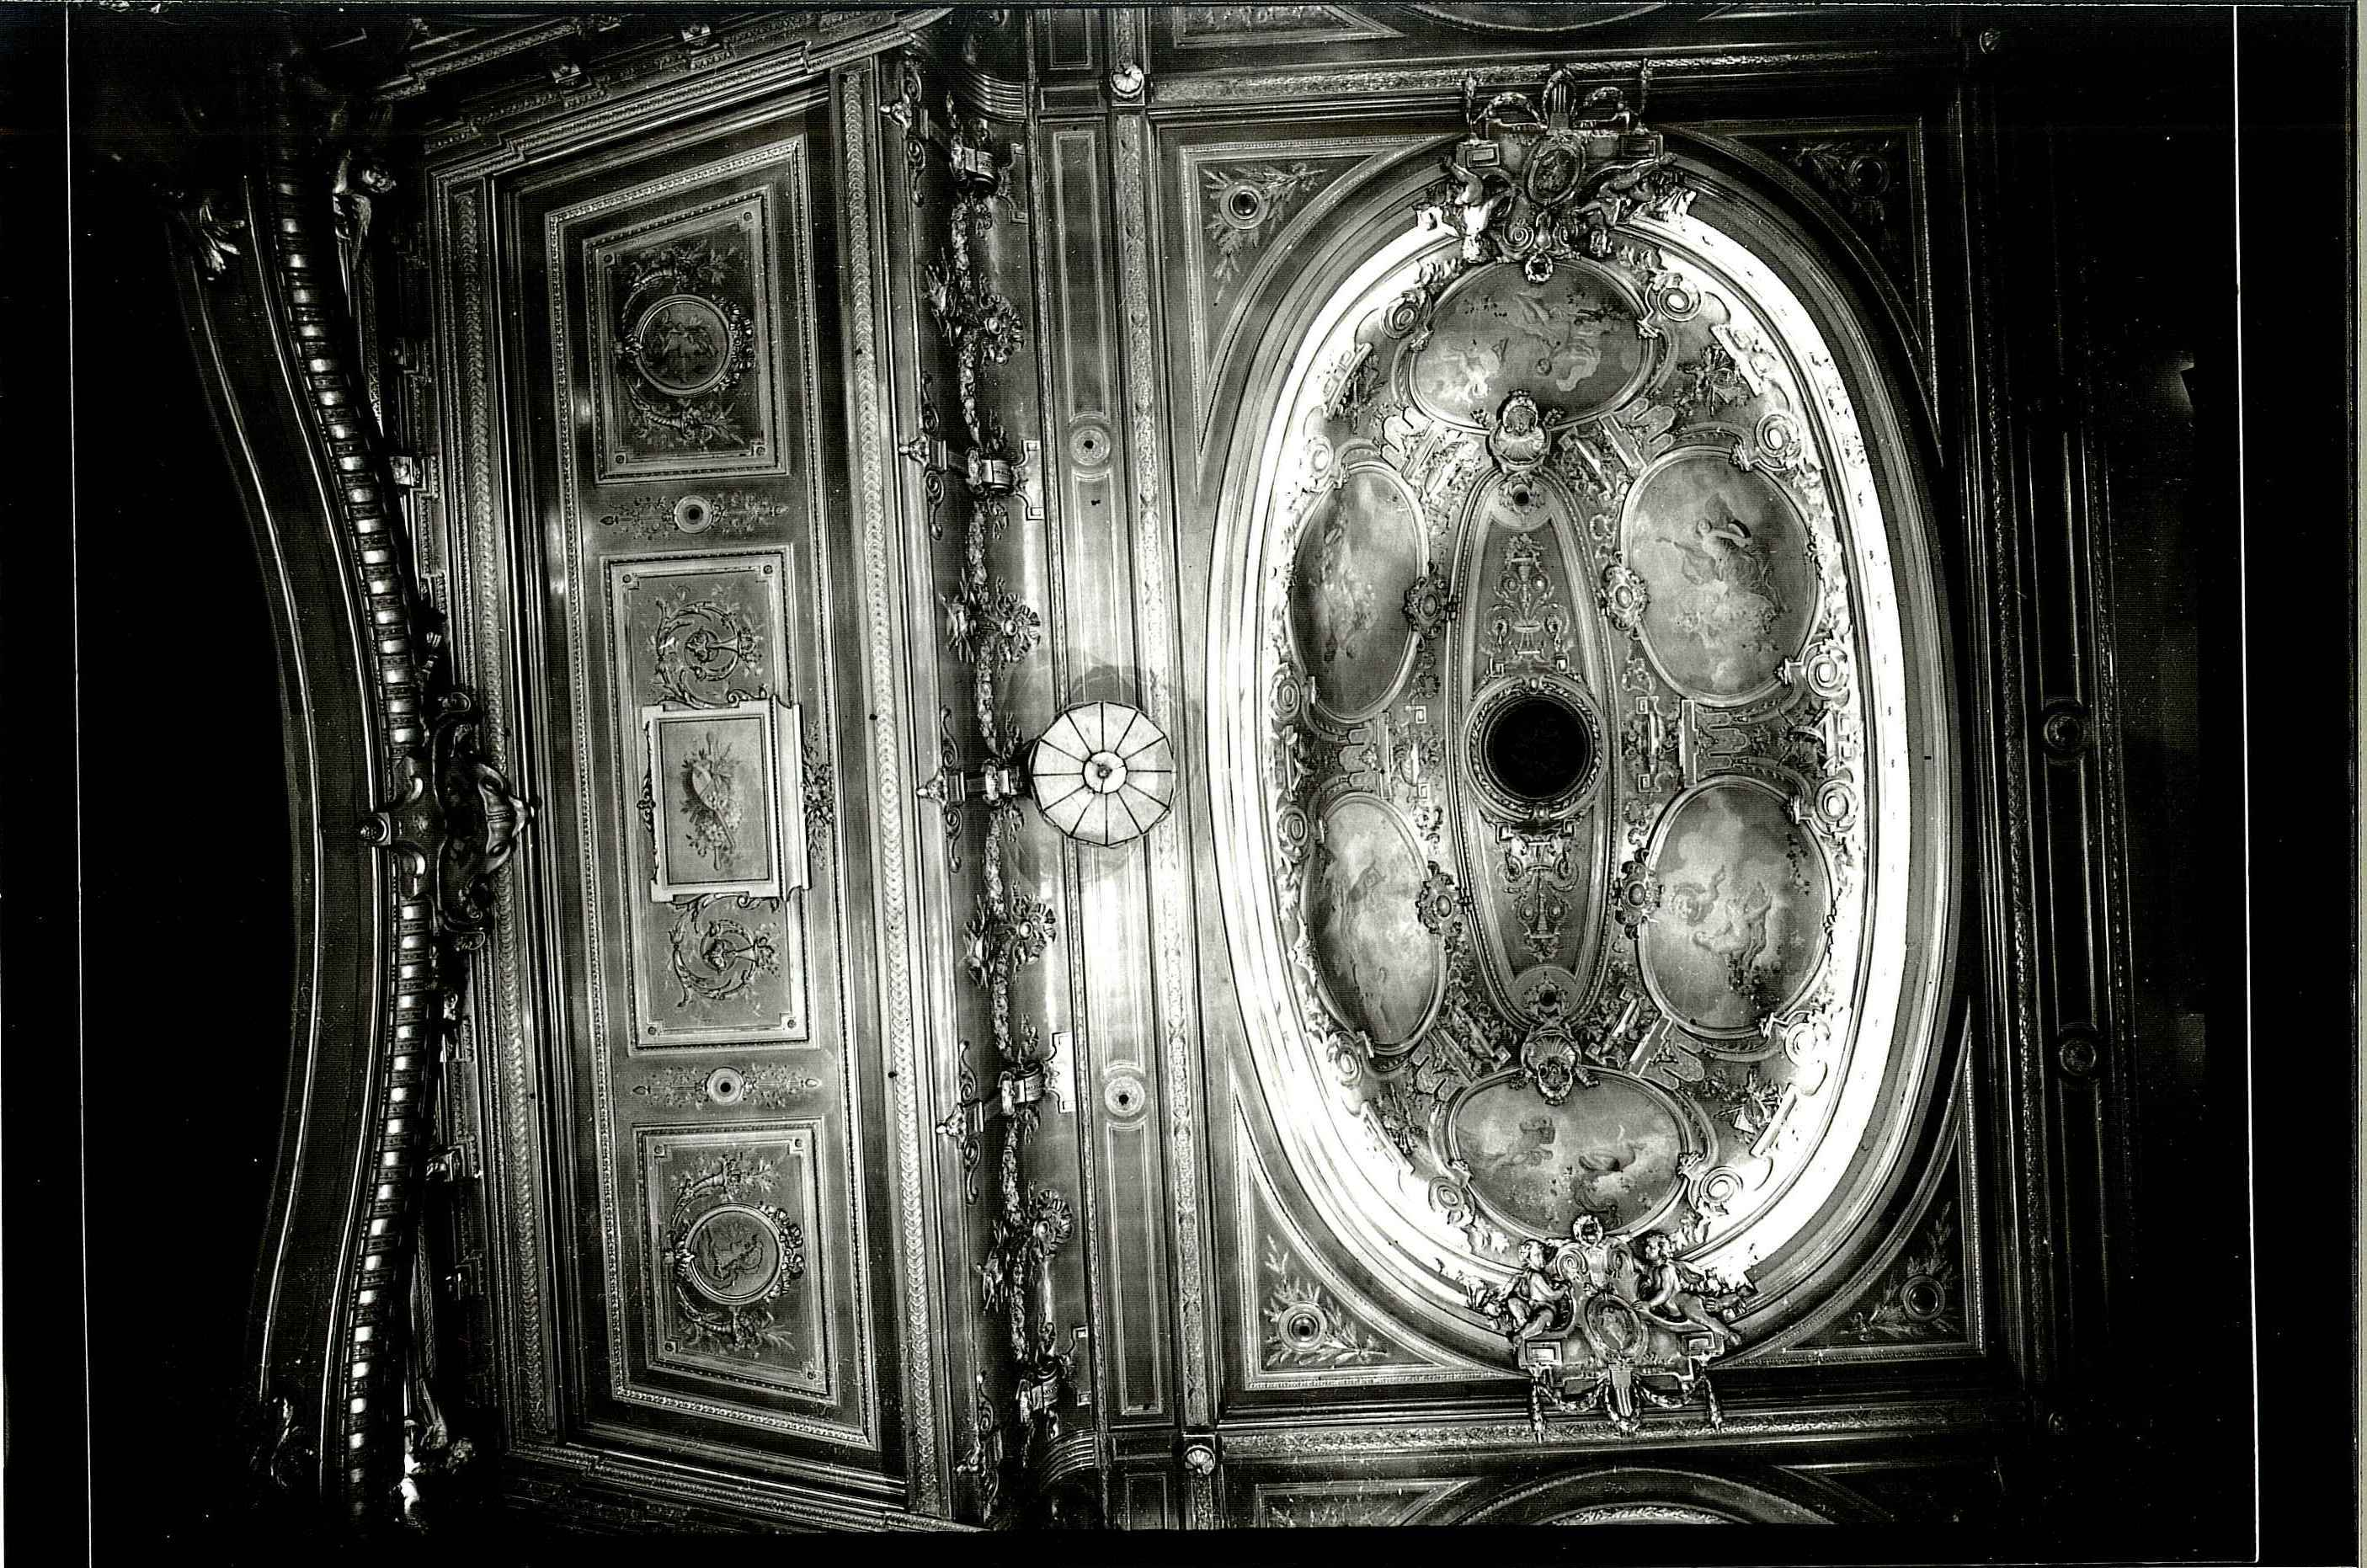 Ceiling detail, Buxton Opera House, looking towards, probably 1950s.